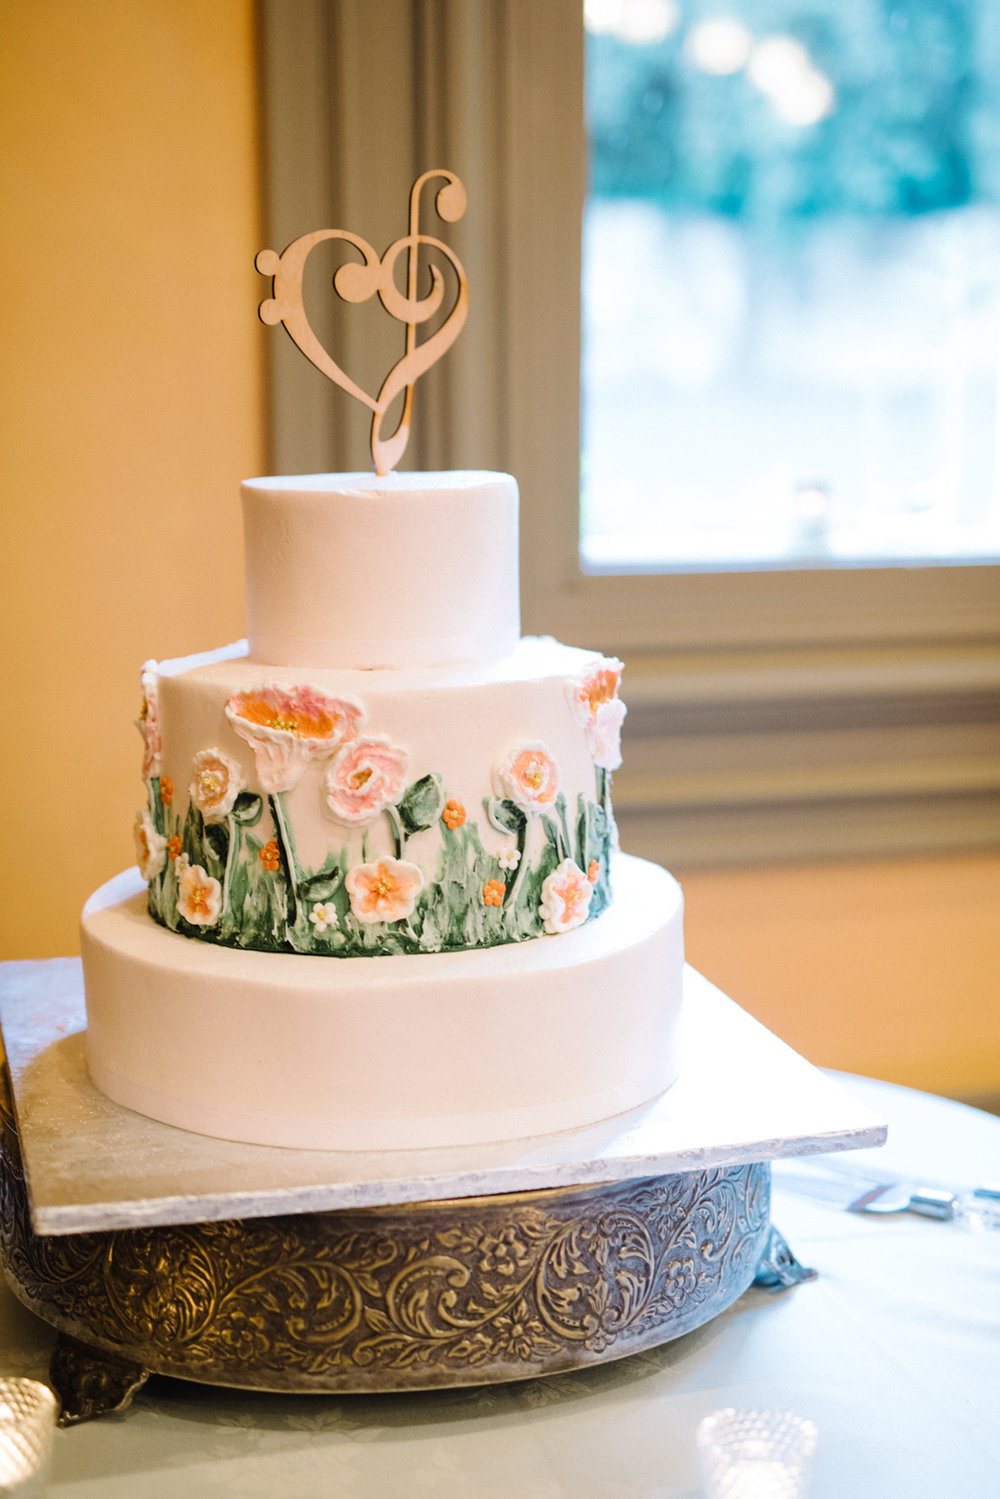 Garden Inspired Cake Decor - Wanna know the best kind of flowers for your wedding? Edible ones! These hand-painted buttercream flowers made this cake almost too beautiful to eat! …….almost!(Cake by The Pastry Garden)